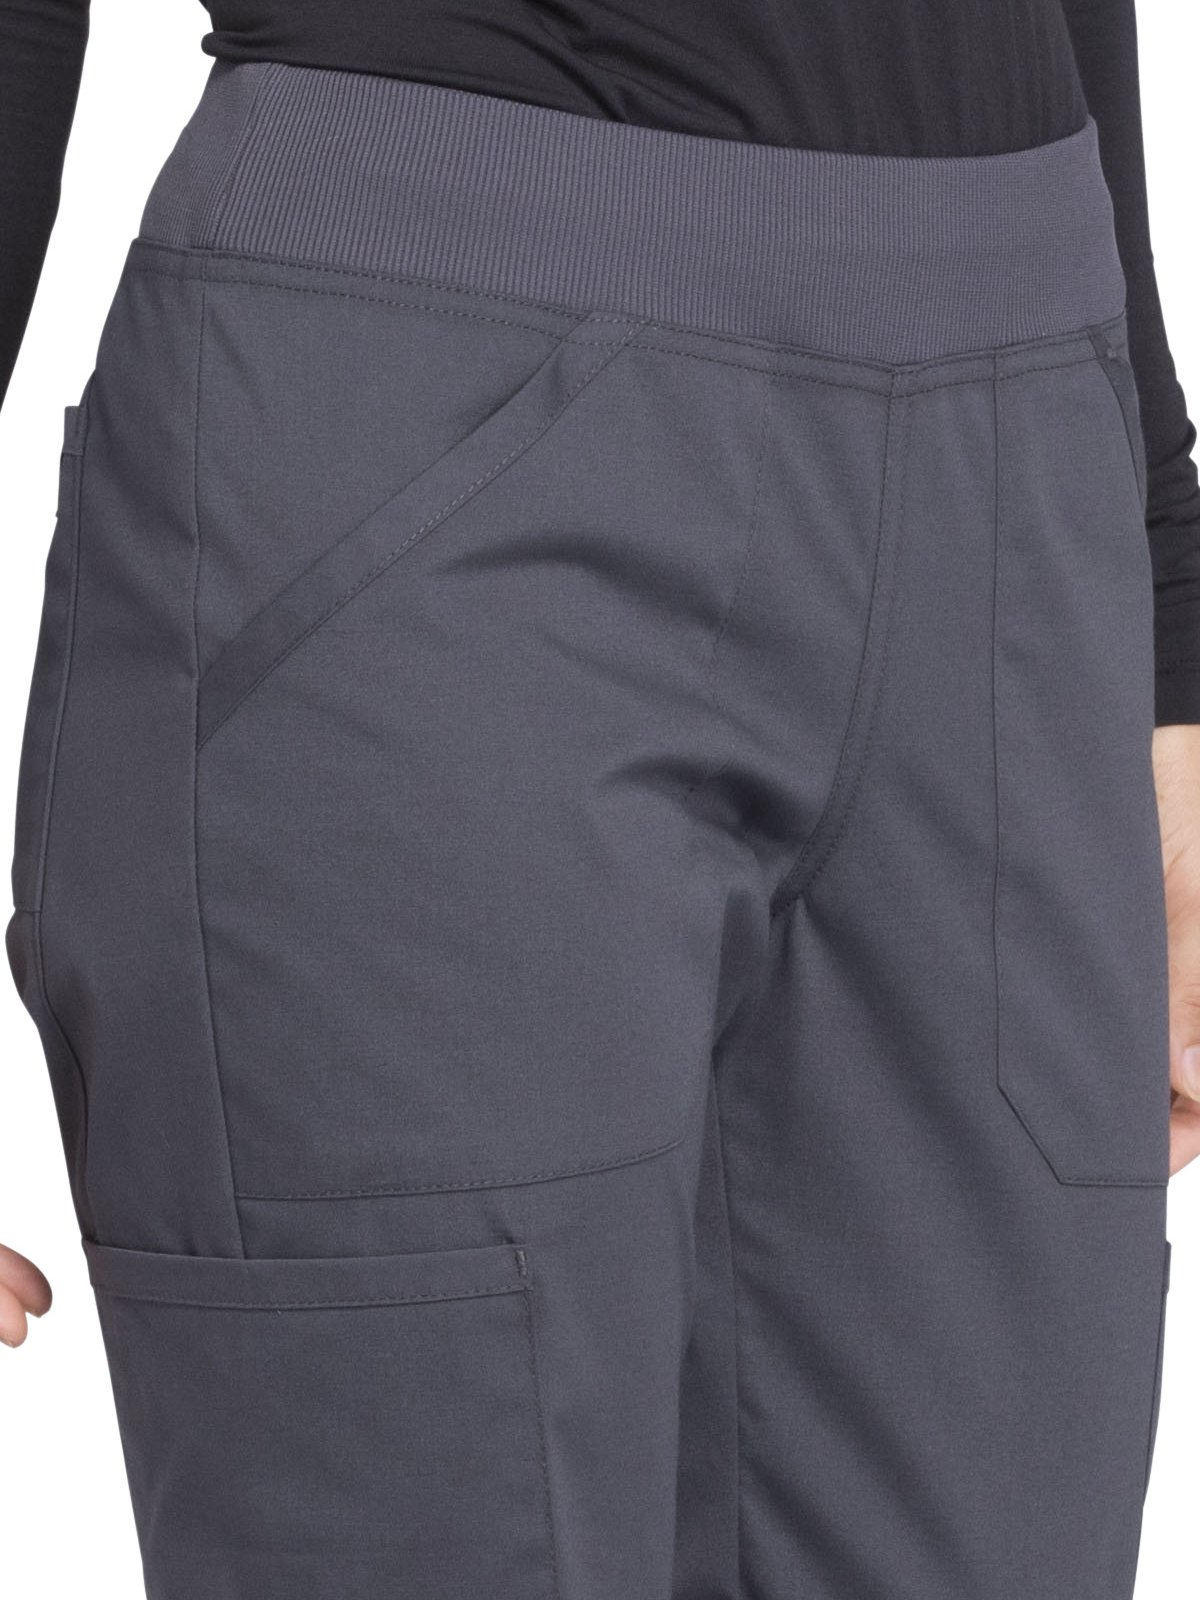 Cherokee Workwear Professionals WW170 Cargo Pant- Pewter- Medium Petite by Cherokee Workwear Professionals (Image #3)